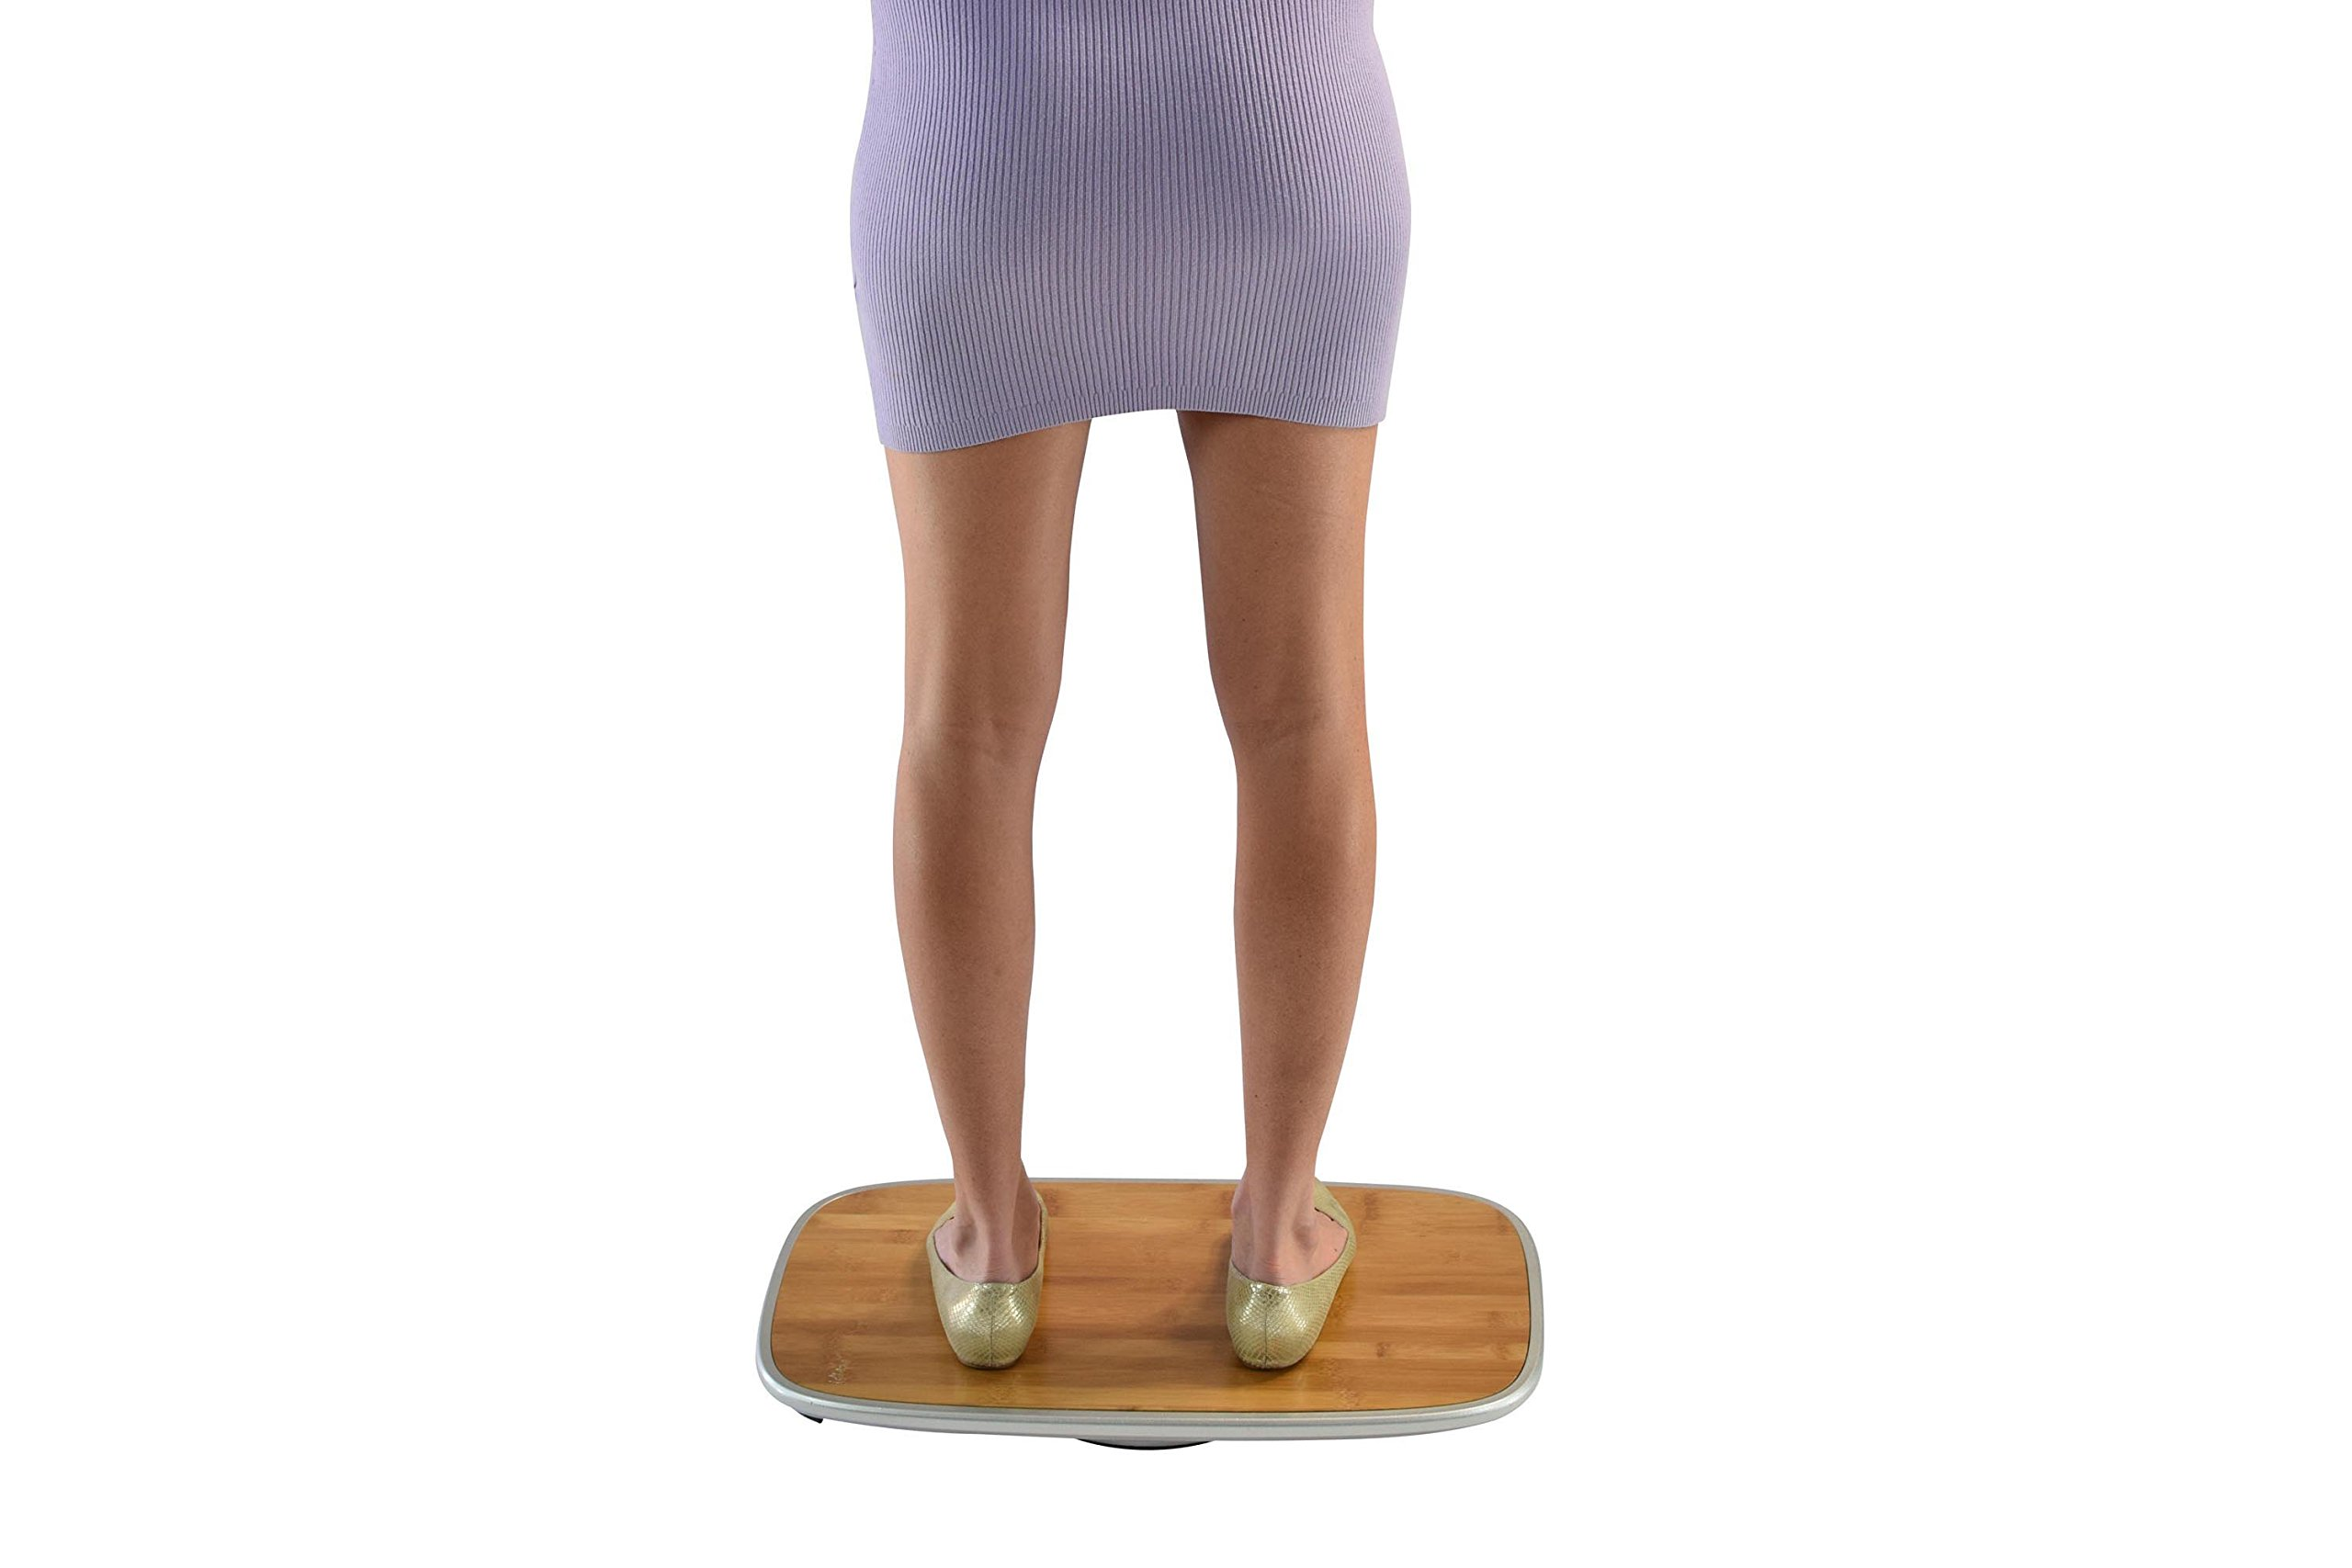 BASE Balance & Stability Board. Active Standing Desk Wobble Platform Trainer for Home, Office, Rehab, Fitness. Full Range of Motion. Patented by Uncaged Ergonomics (Image #1)